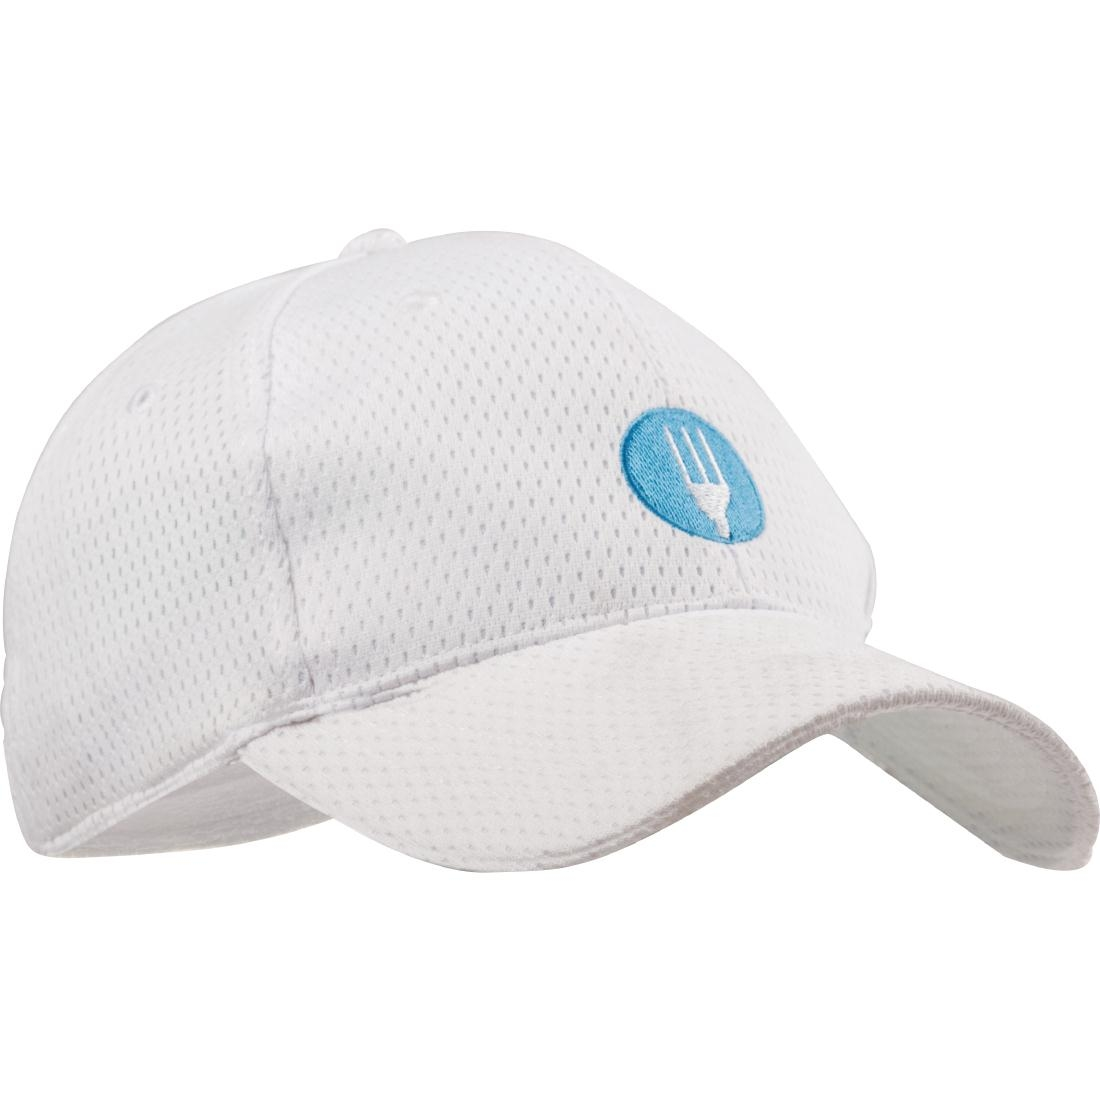 Casquette baseball Cool Vent Chef Works blanche